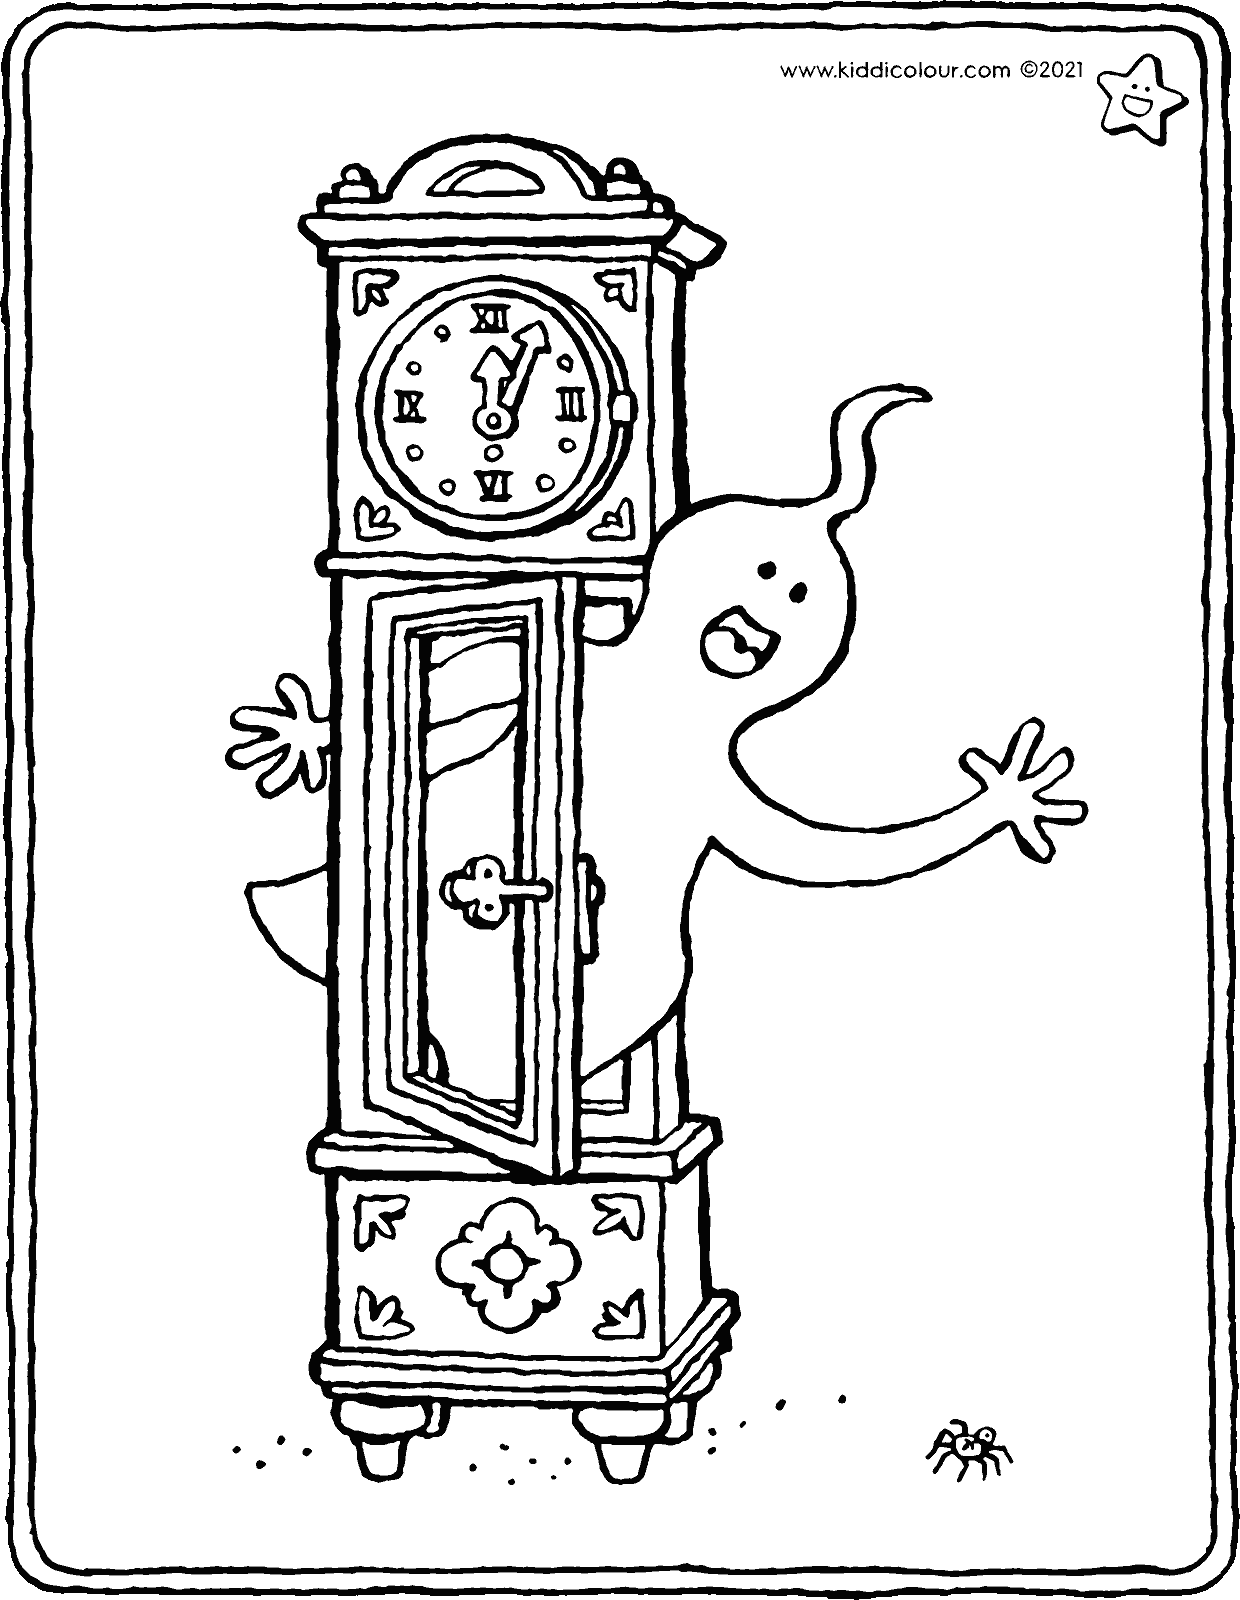 the witching hour coloring page - drawing - colouring picture 01V